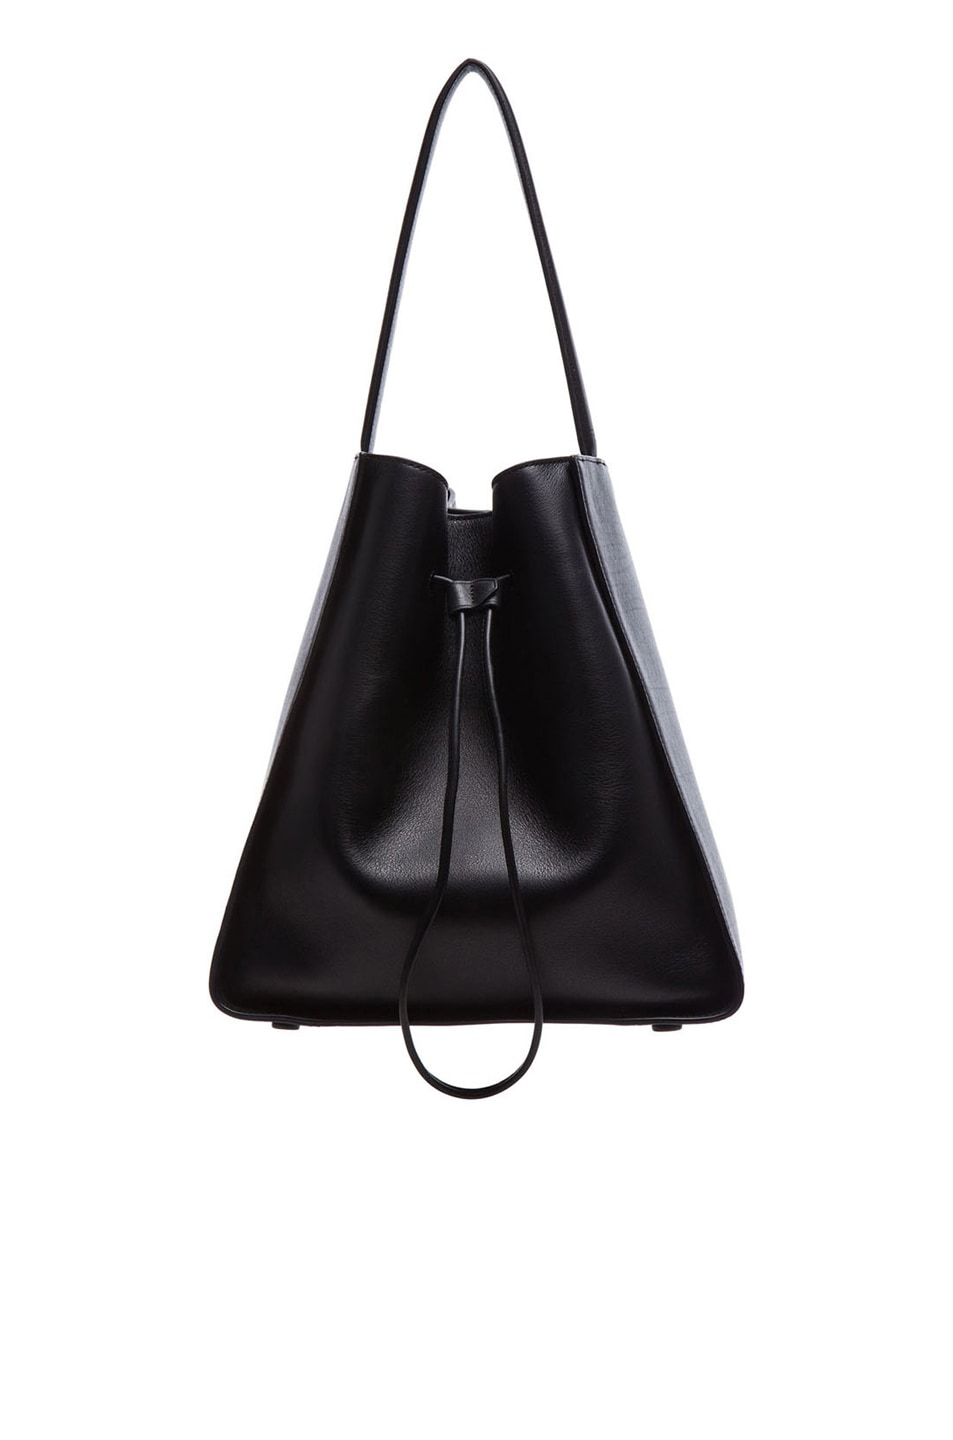 Image 1 of 3.1 phillip lim Large Soleil Bucket Bag in Black